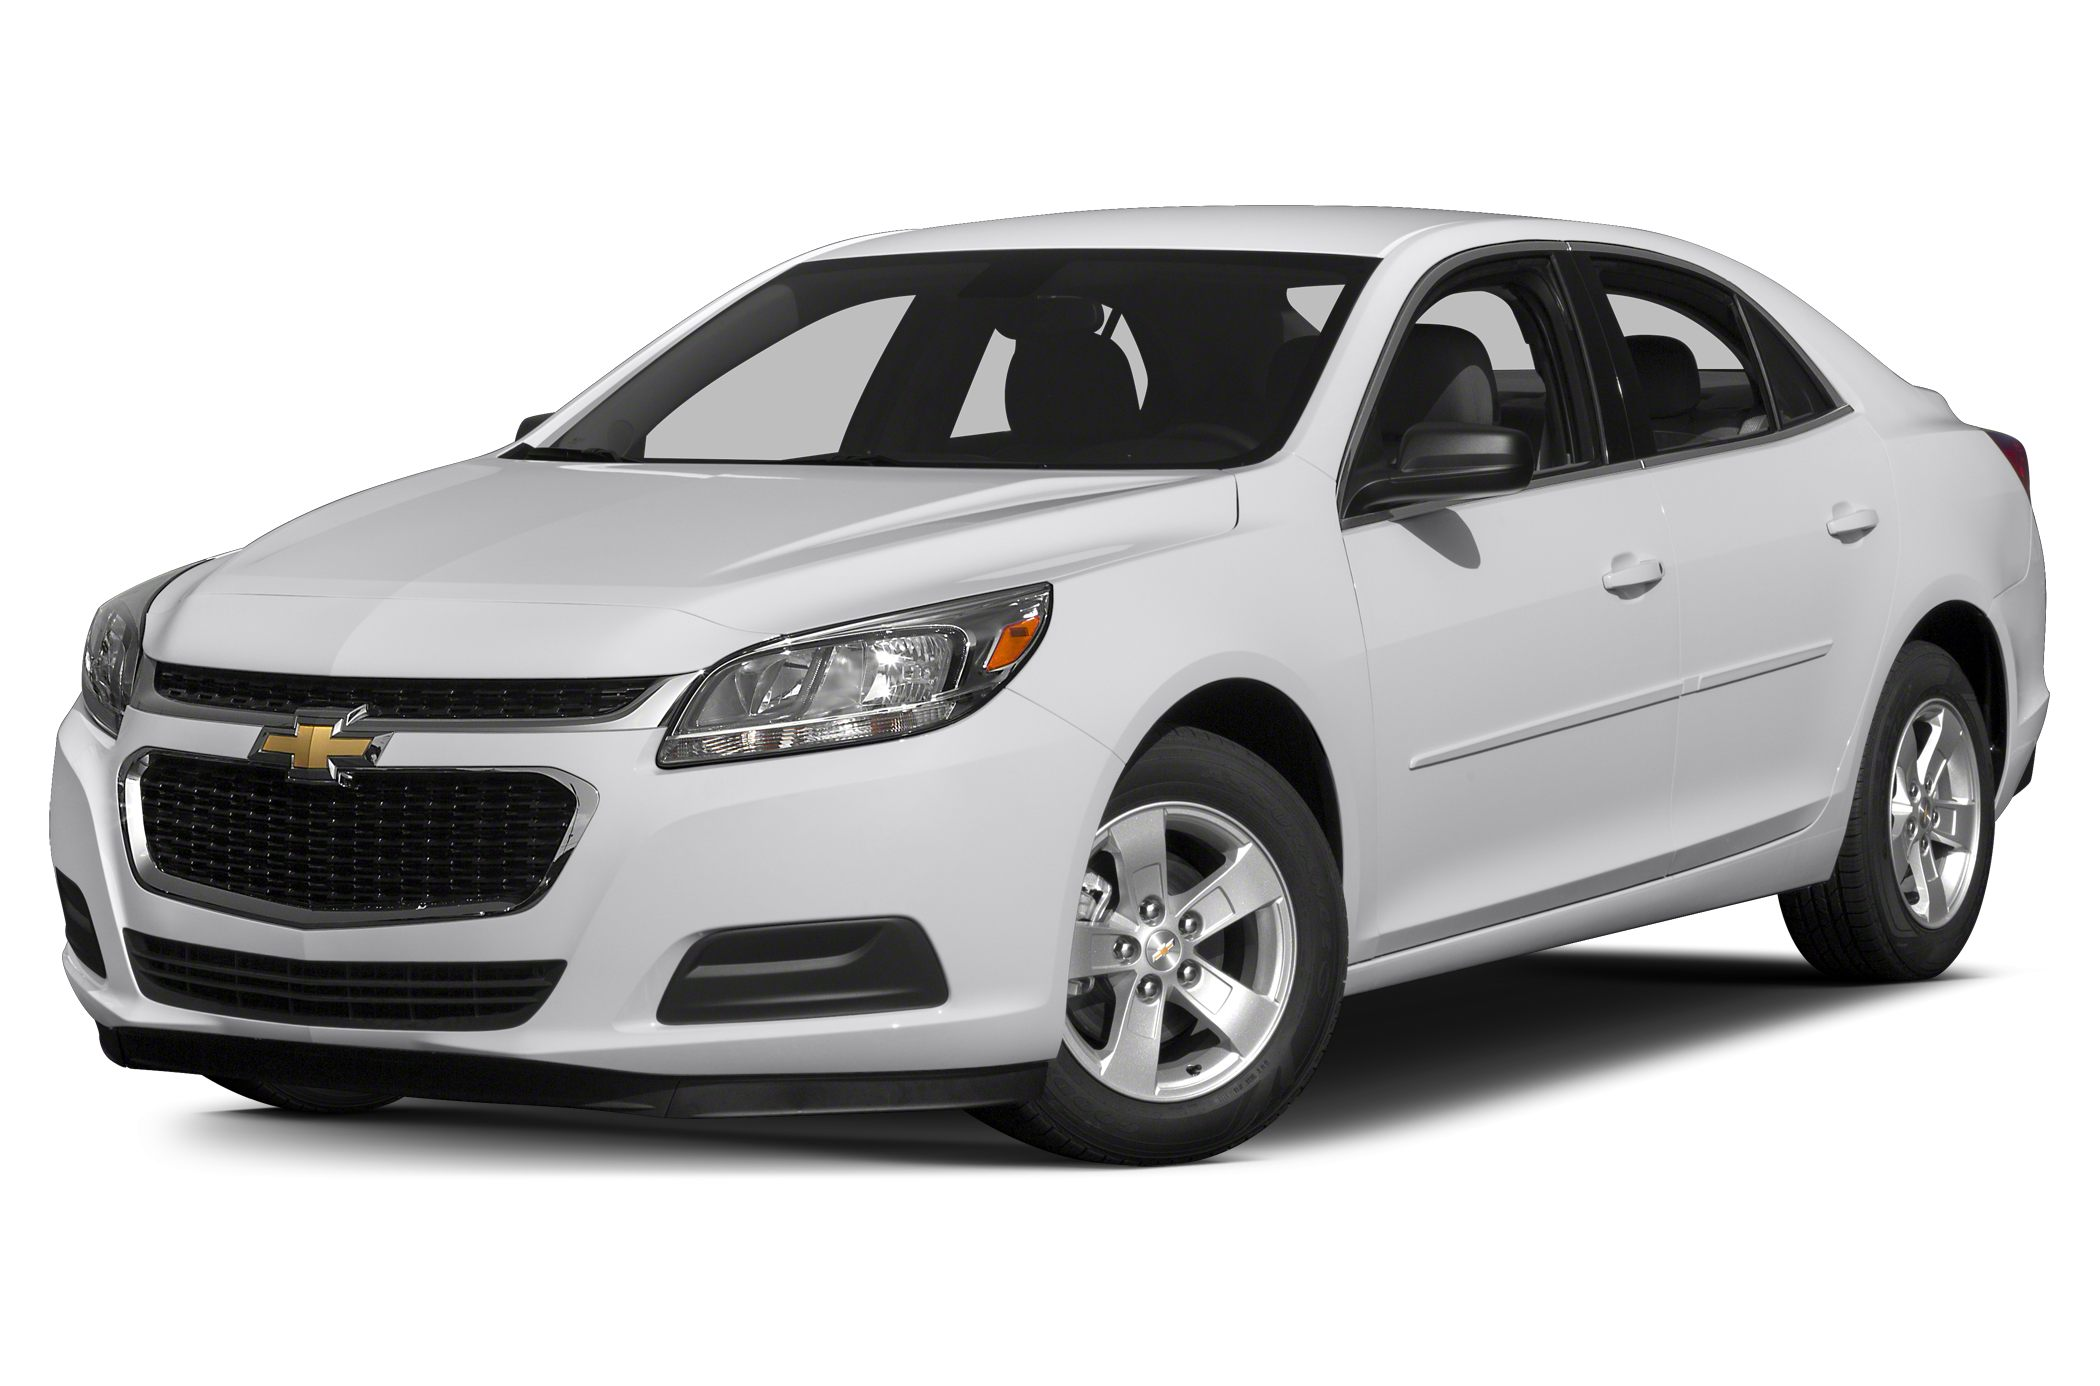 2015 Chevrolet Malibu 1LT Sedan for sale in Fort Dodge for $25,985 with 150 miles